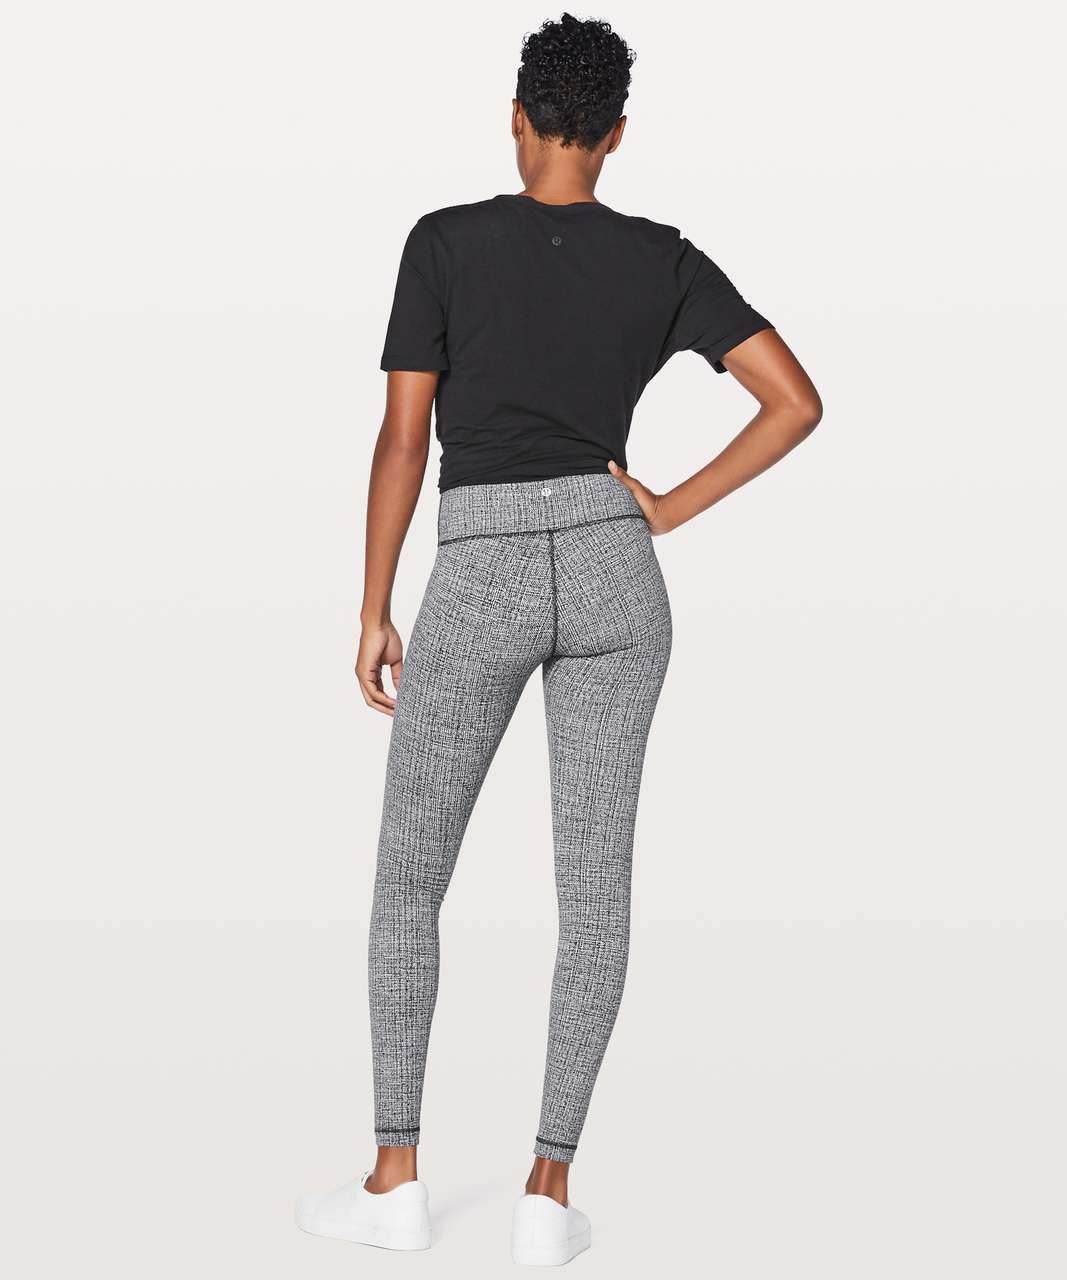 "Lululemon Wunder Under Hi-Rise Tight 28"" - Ritual Jacquard Luon Black White"